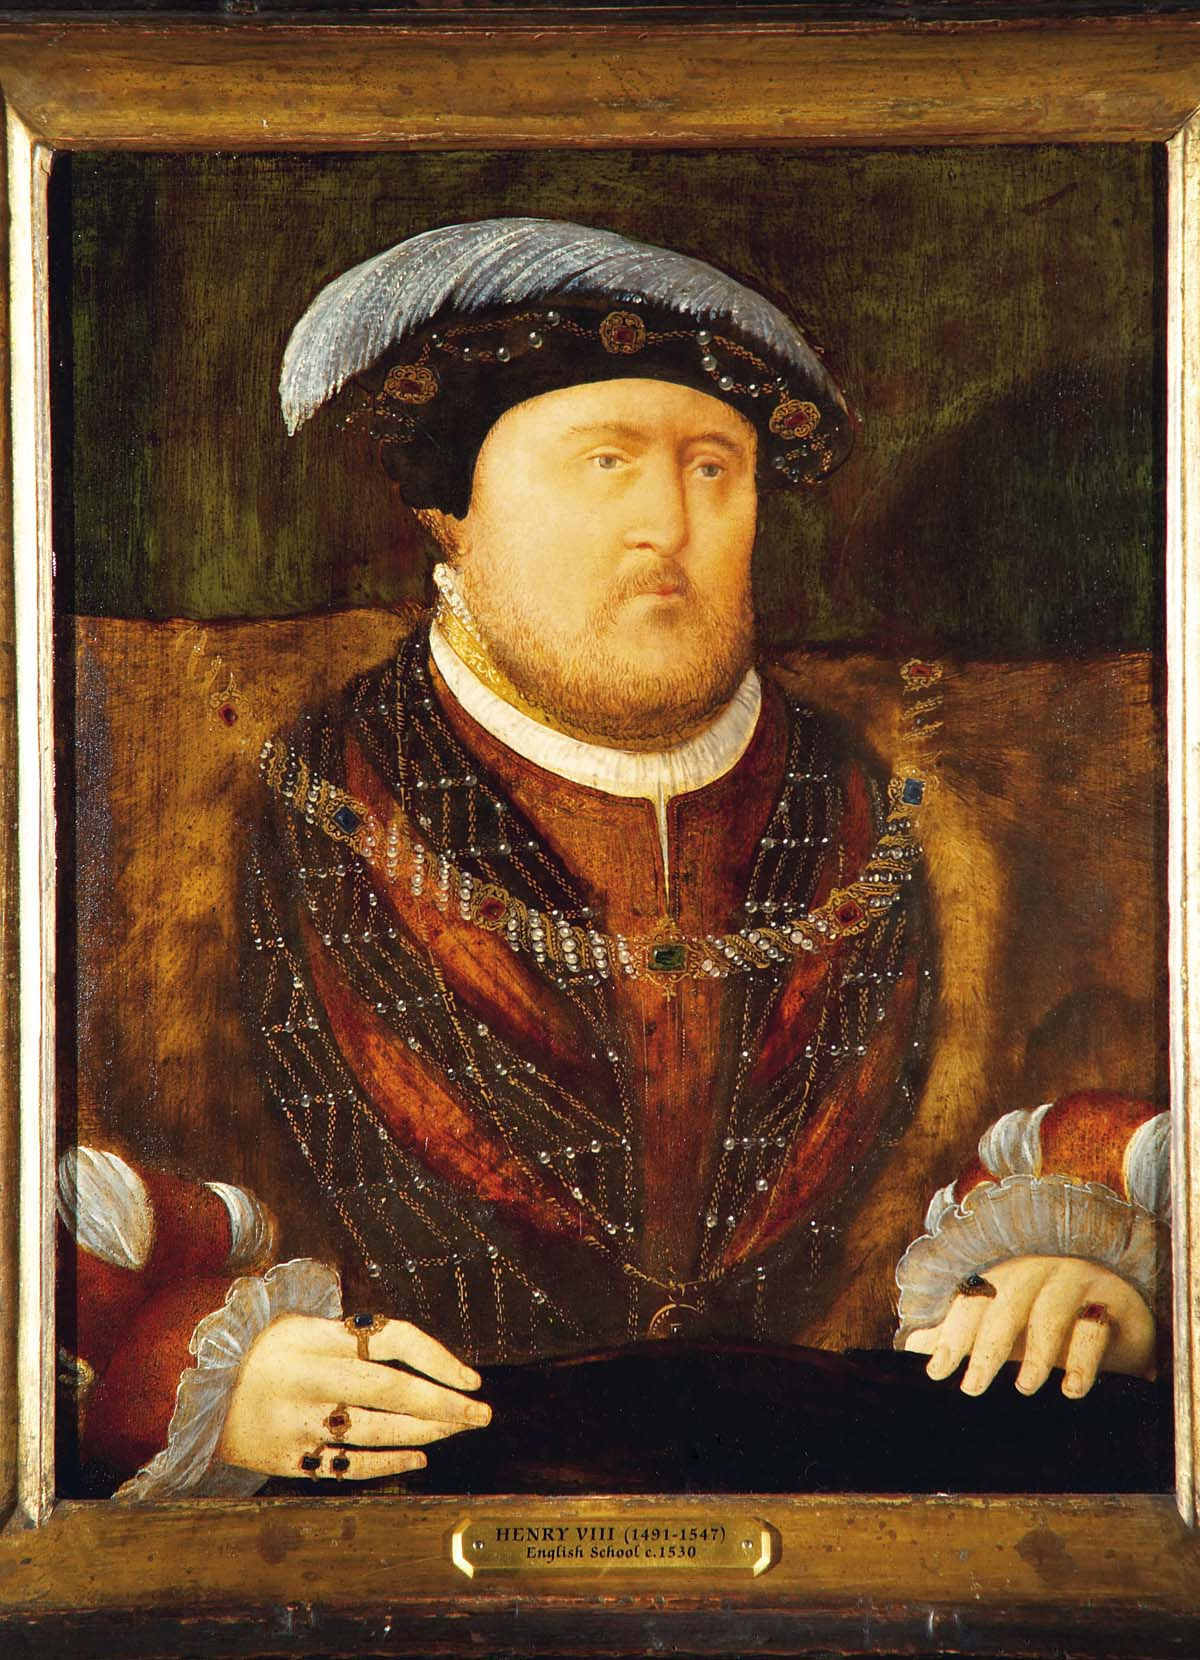 A portrait of Henry VIII in his robes and black felt hat with opulent feather